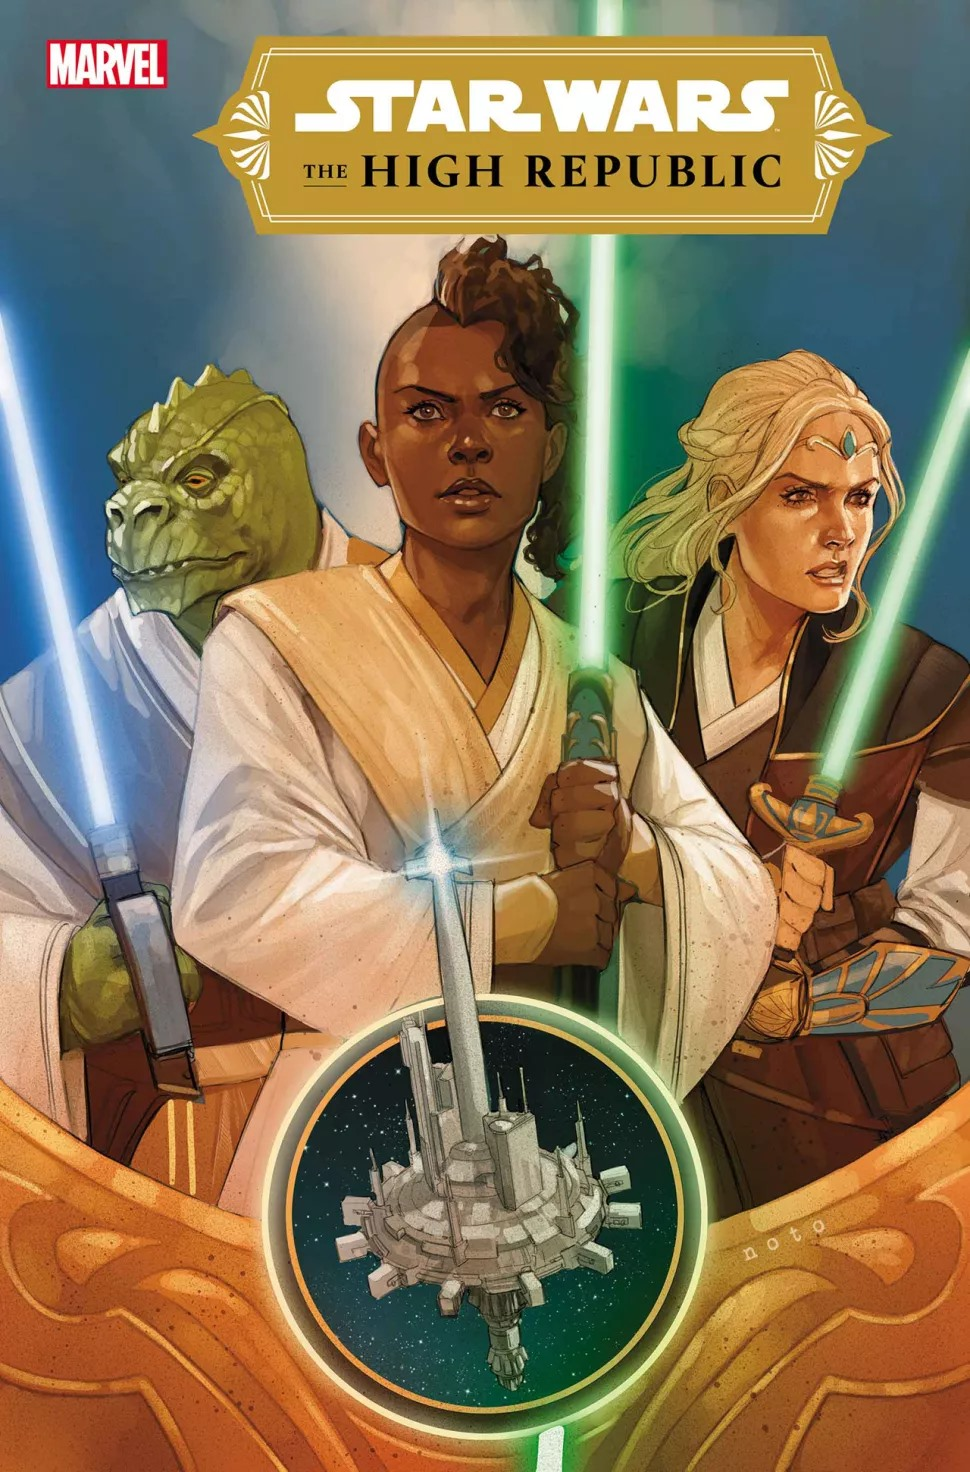 Three Jedi stand with lightsabers raised on the cover of Star Wars: The High Republic #1, Marvel Comics (2021).